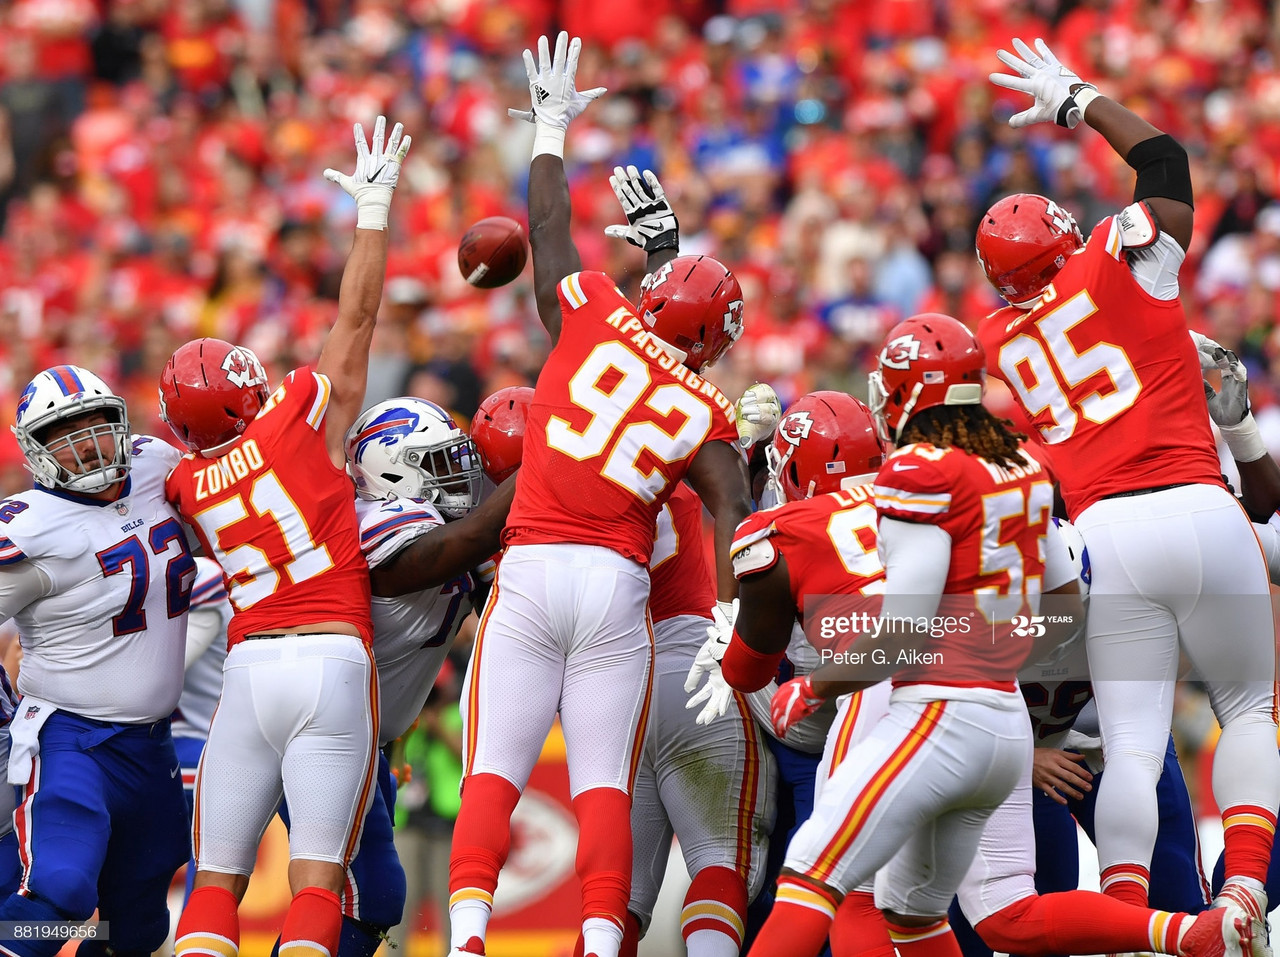 KANSAS CITY, MO - NOVEMBER 26: Players of the Kansas City Chiefs attempt to block a field goal against the Buffalo Bills during the first half at Arrowhead Stadium on November 26, 2017 in Kansas City, Missouri. (Photo by Peter G. Aiken/Getty Images